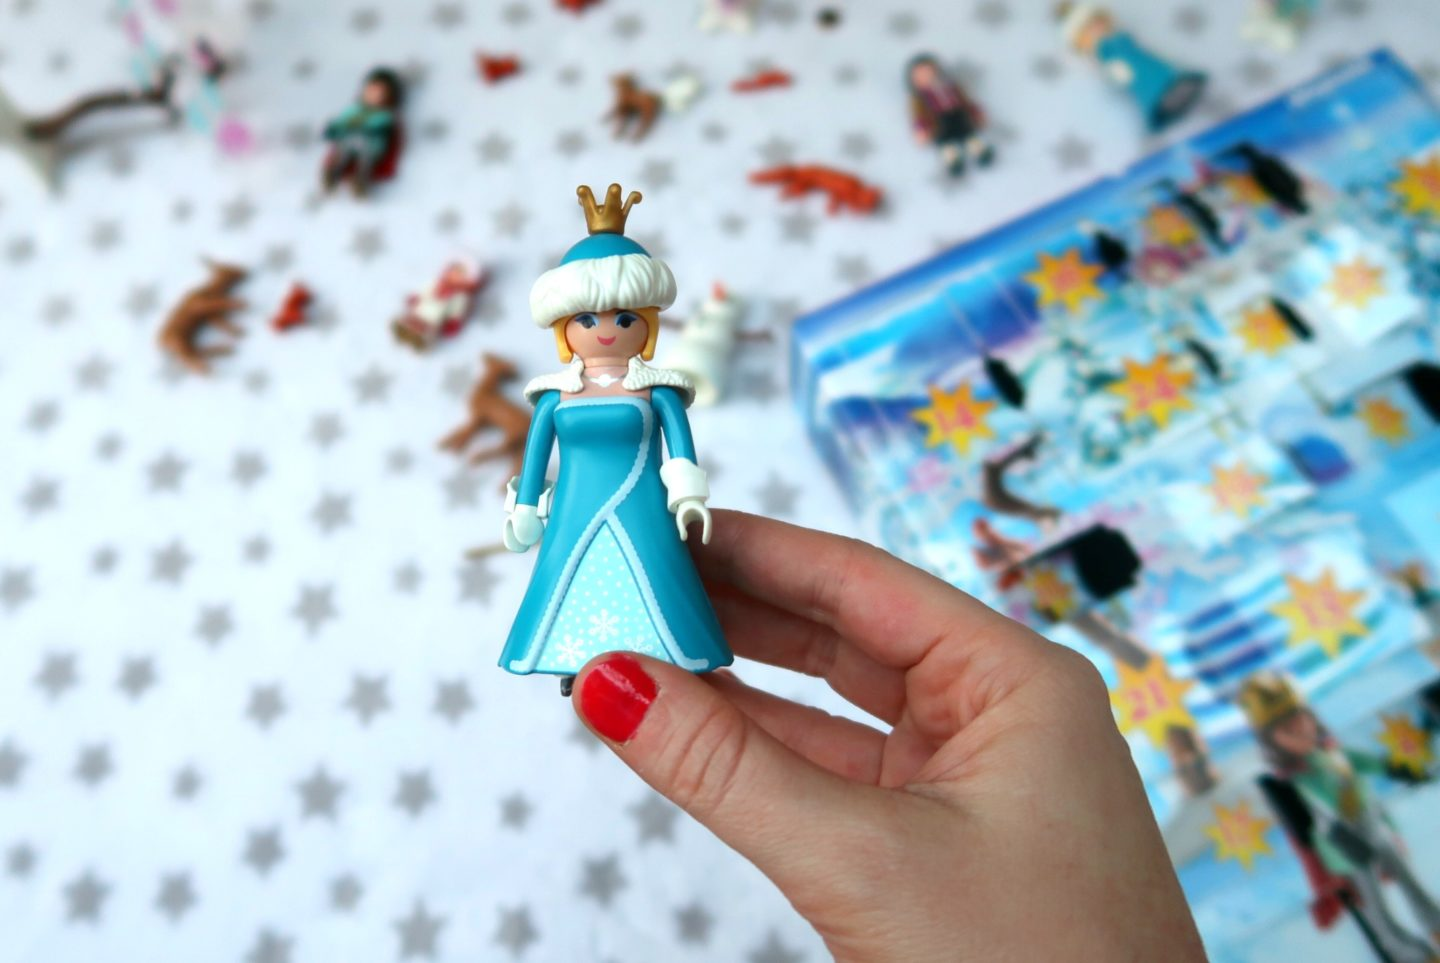 Playmobil advent calendar - is it worth the money?